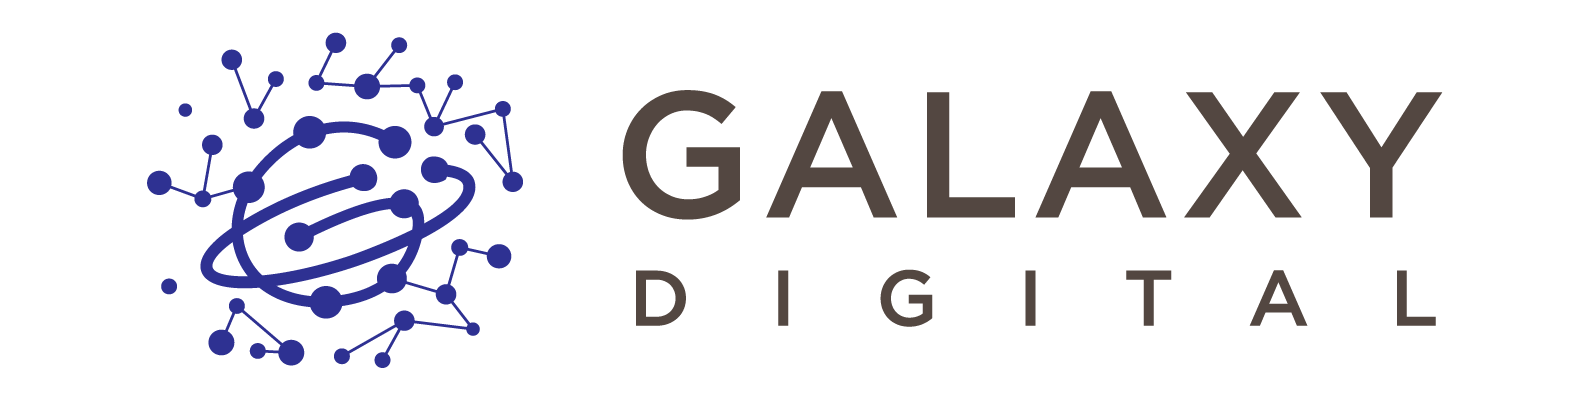 galaxy digital.png